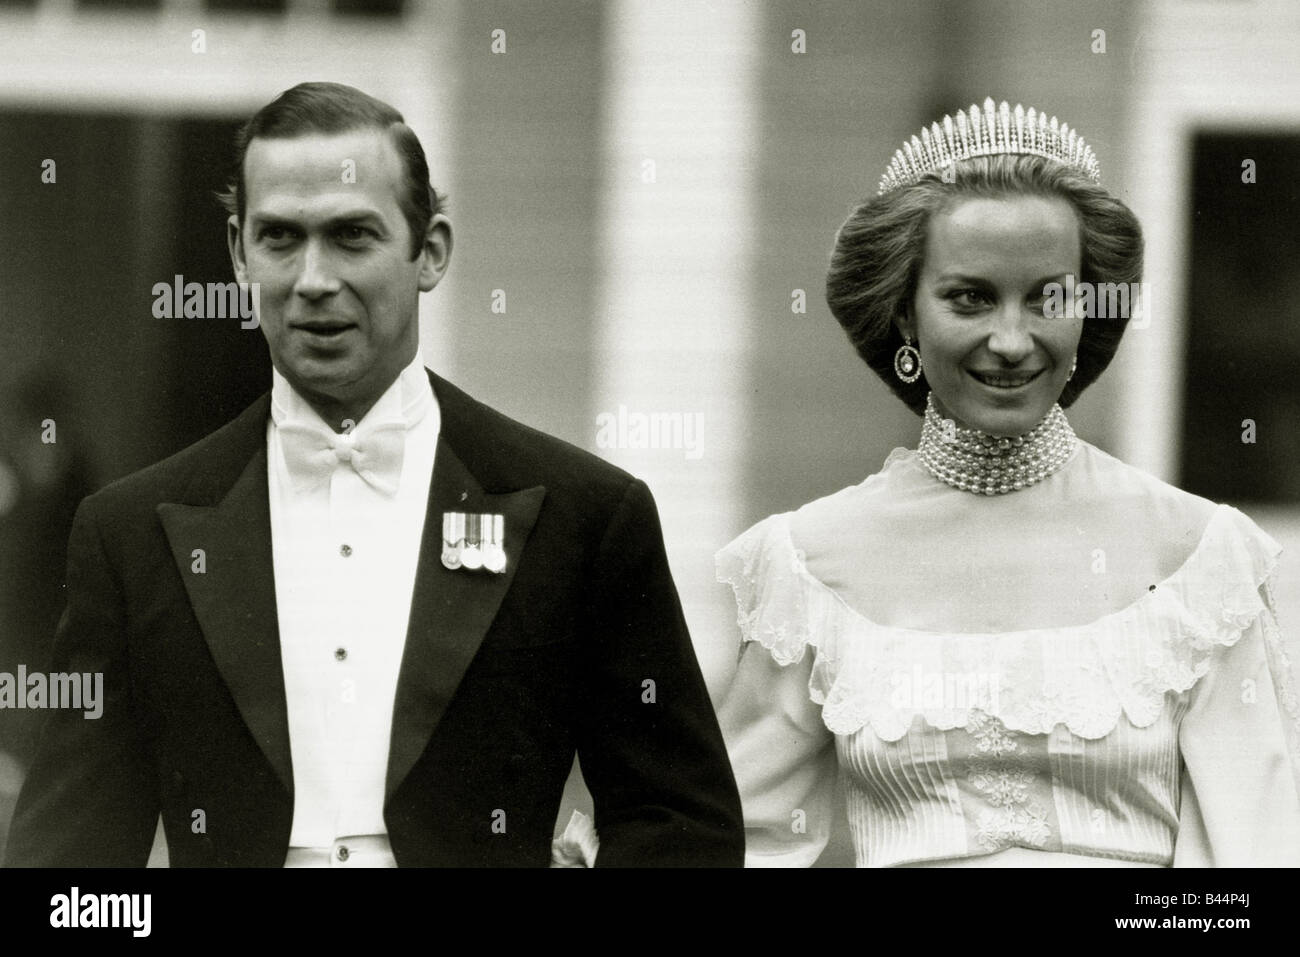 Prince Michael Of Kent And His Bride Marie Christine Von